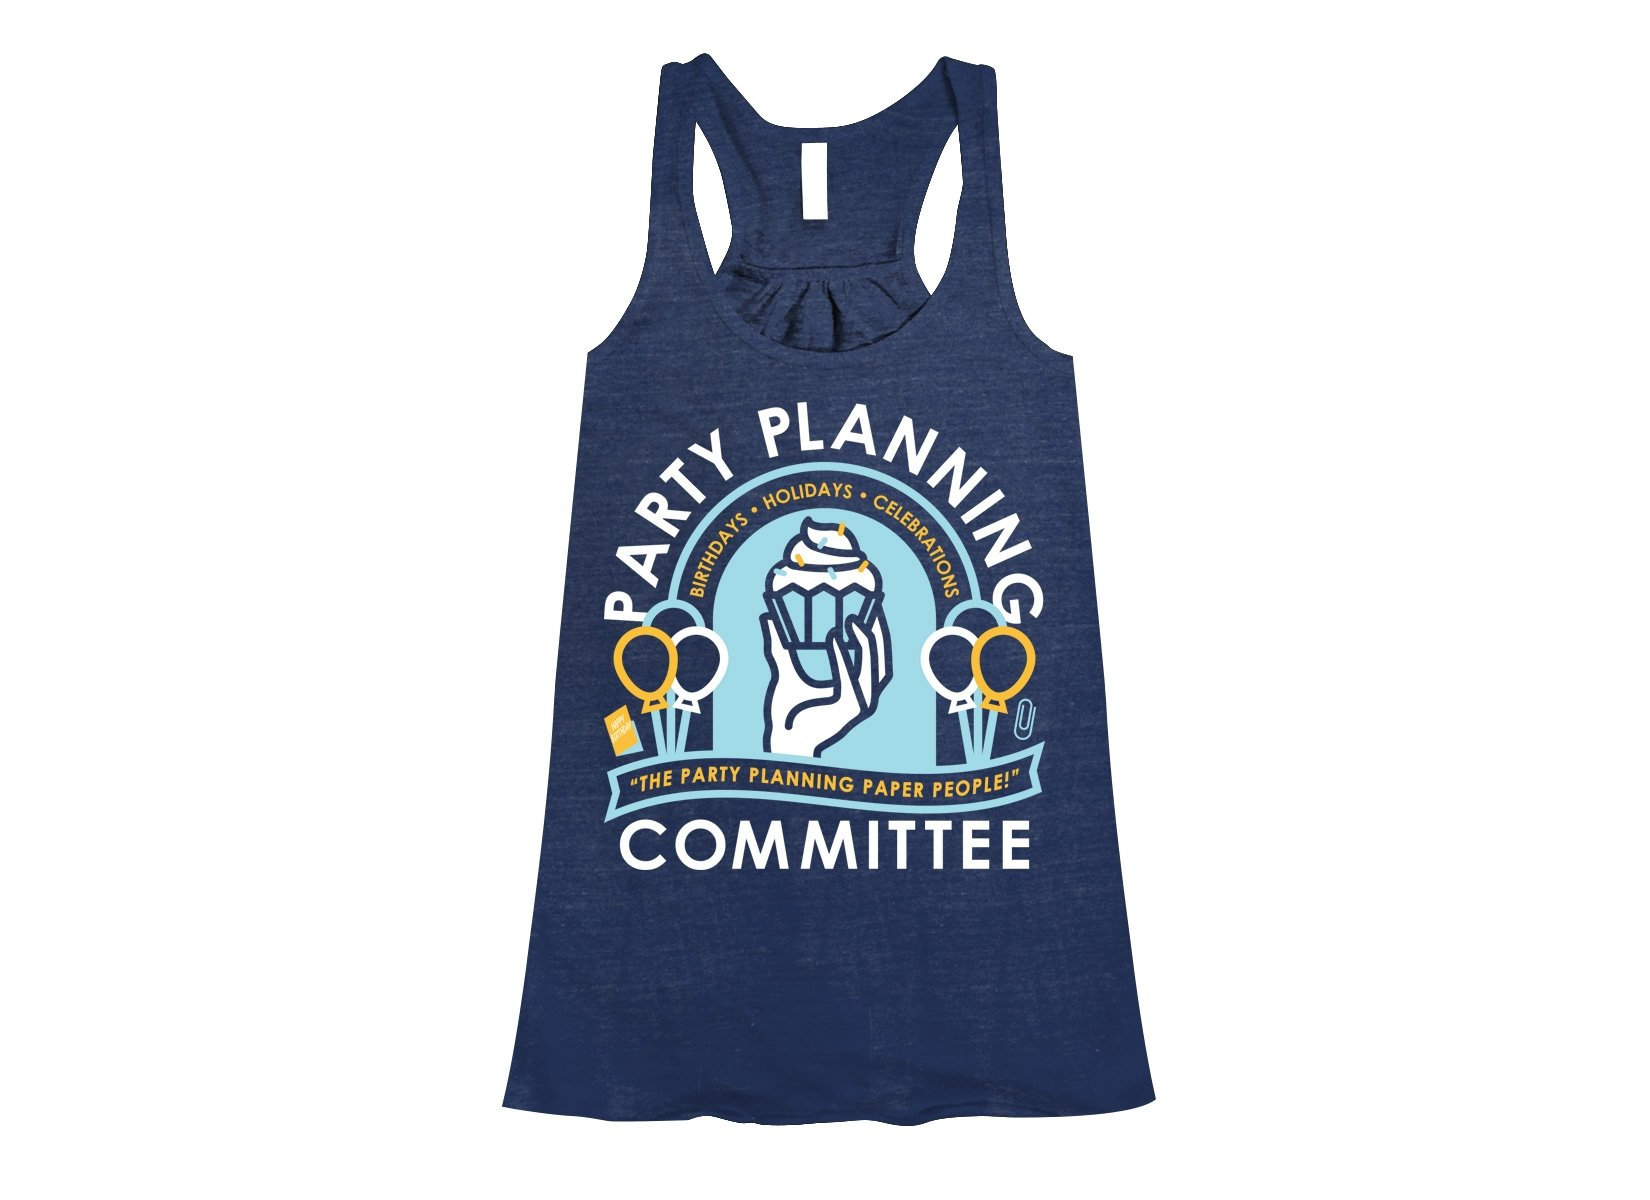 Party Planning Committee on Womens Tanks T-Shirt